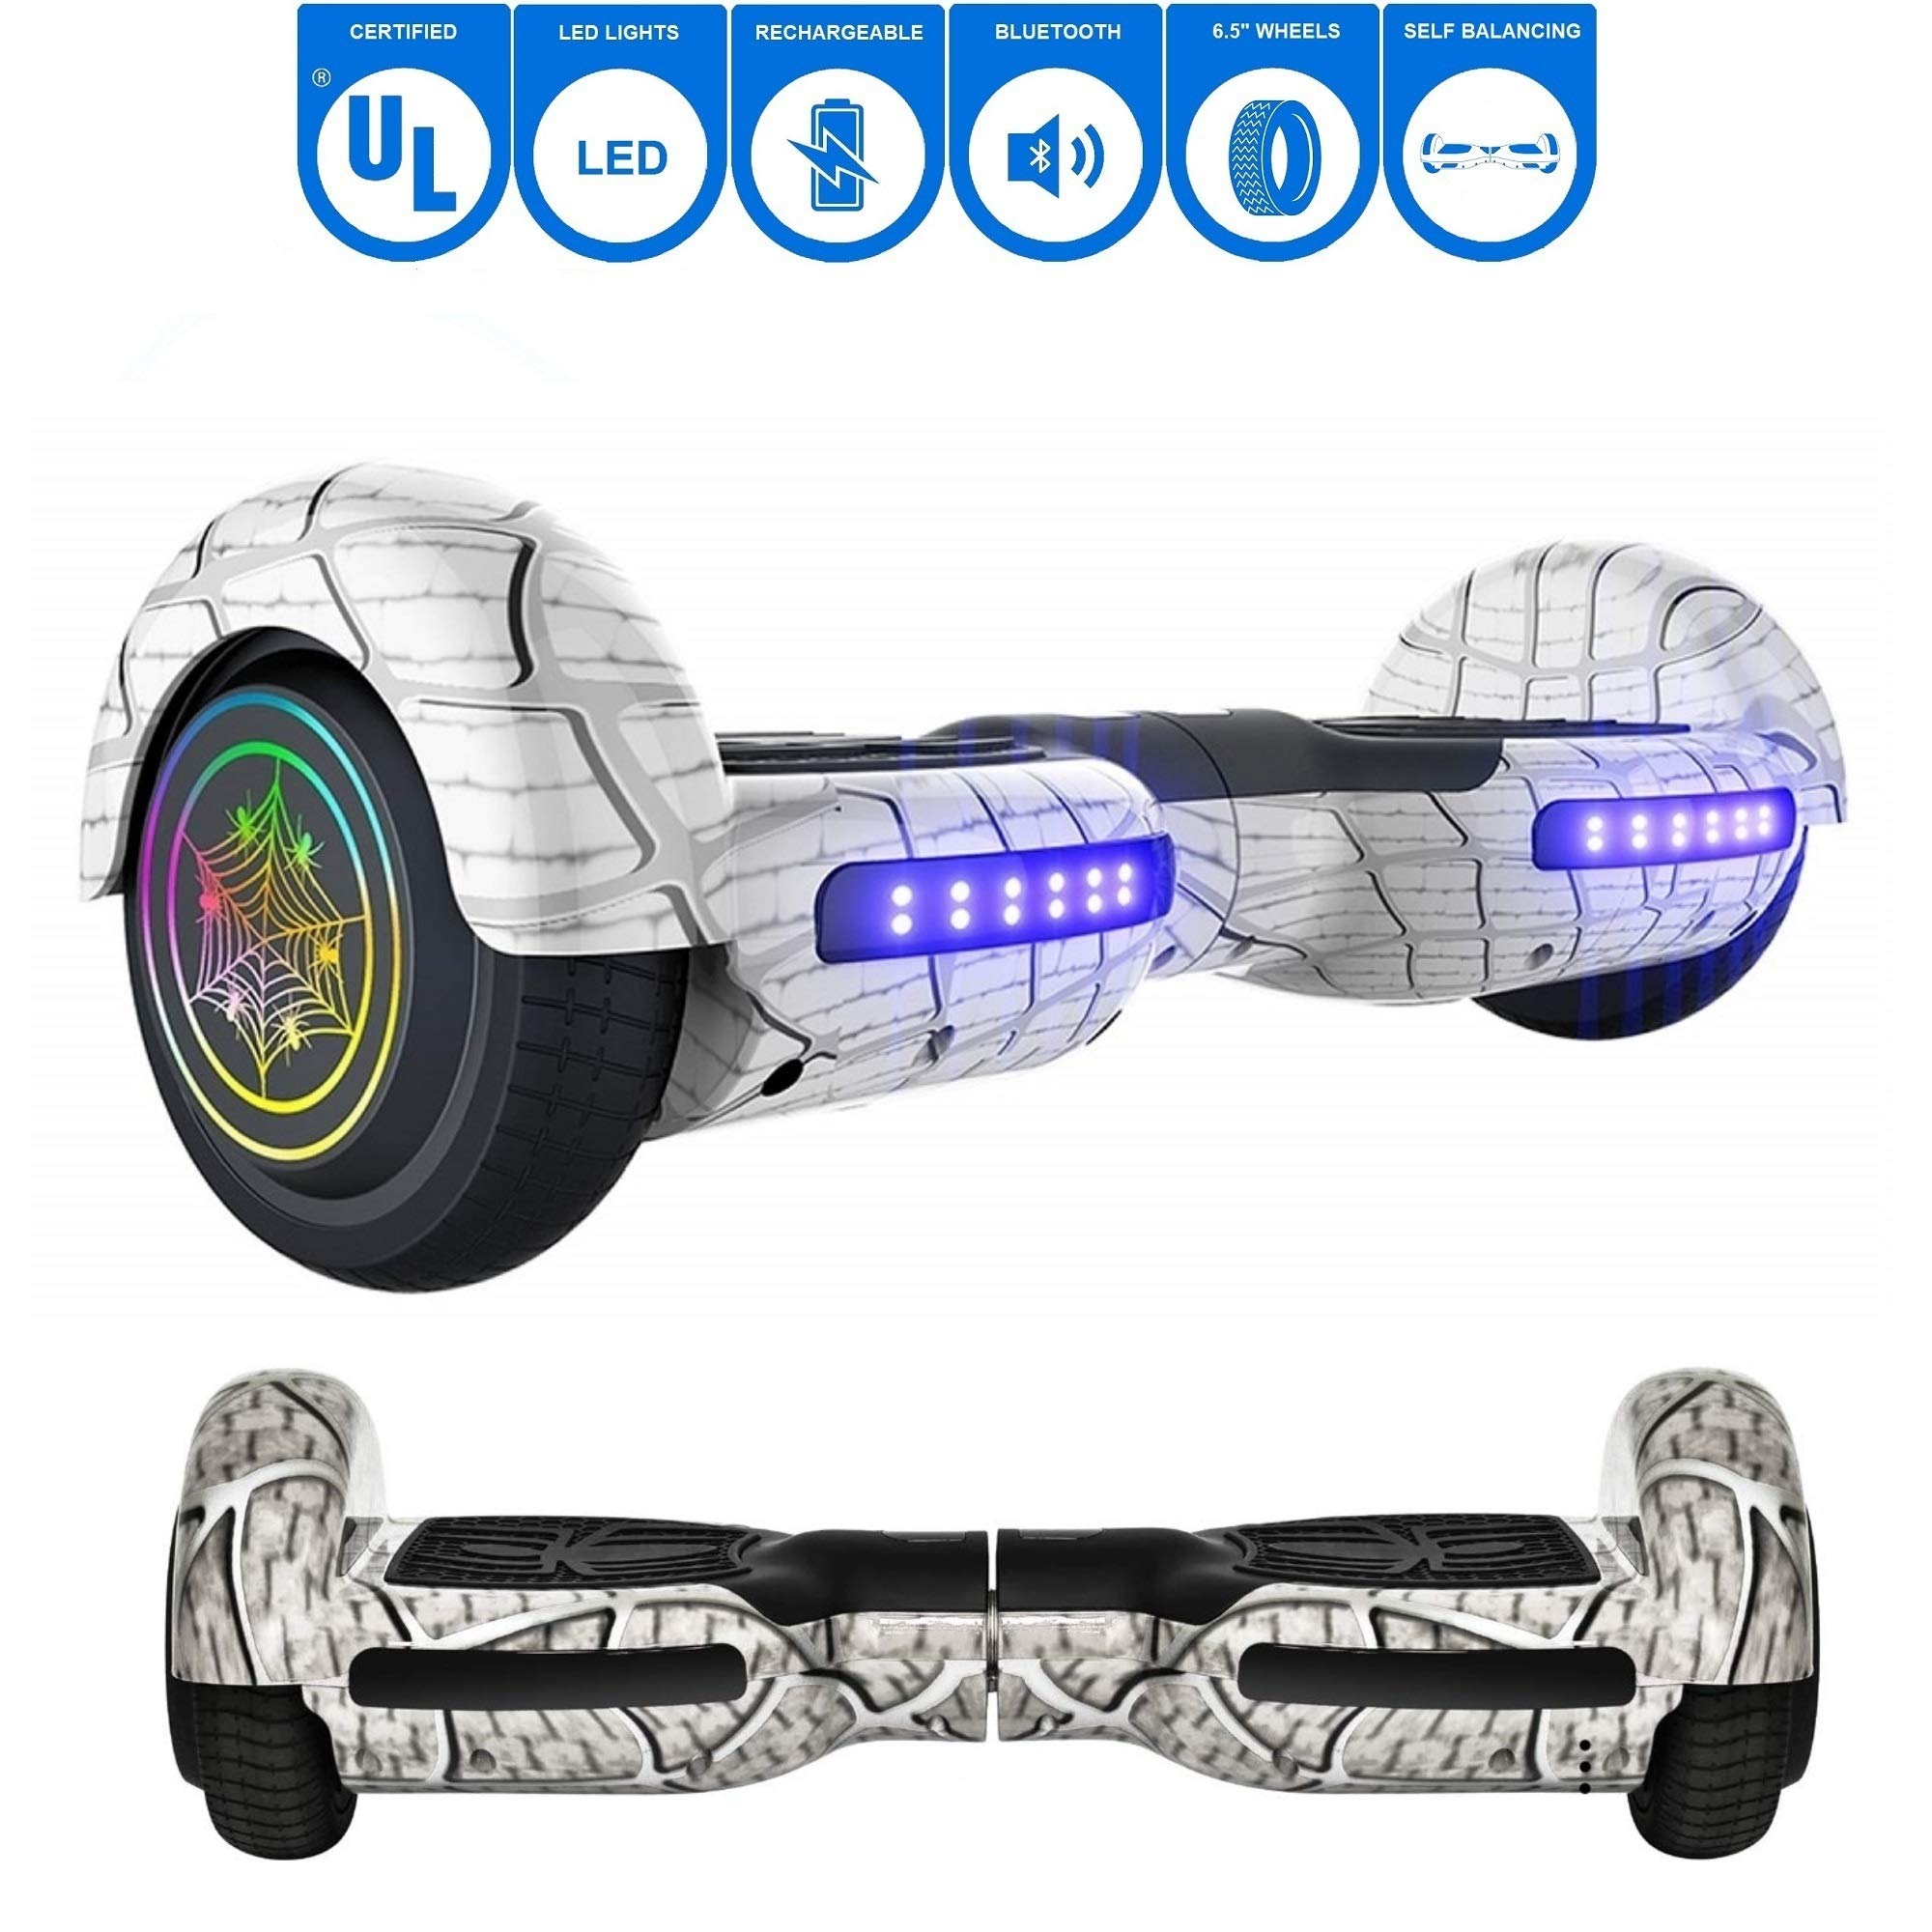 NHT 6.5'' inch Aurora Hoverboard Self Balancing Scooter with Colorful LED Wheels and Lights - UL2272 Certified Carbon Fiber/Spider/Built-in Bluetooth Speaker Available (Spider White)